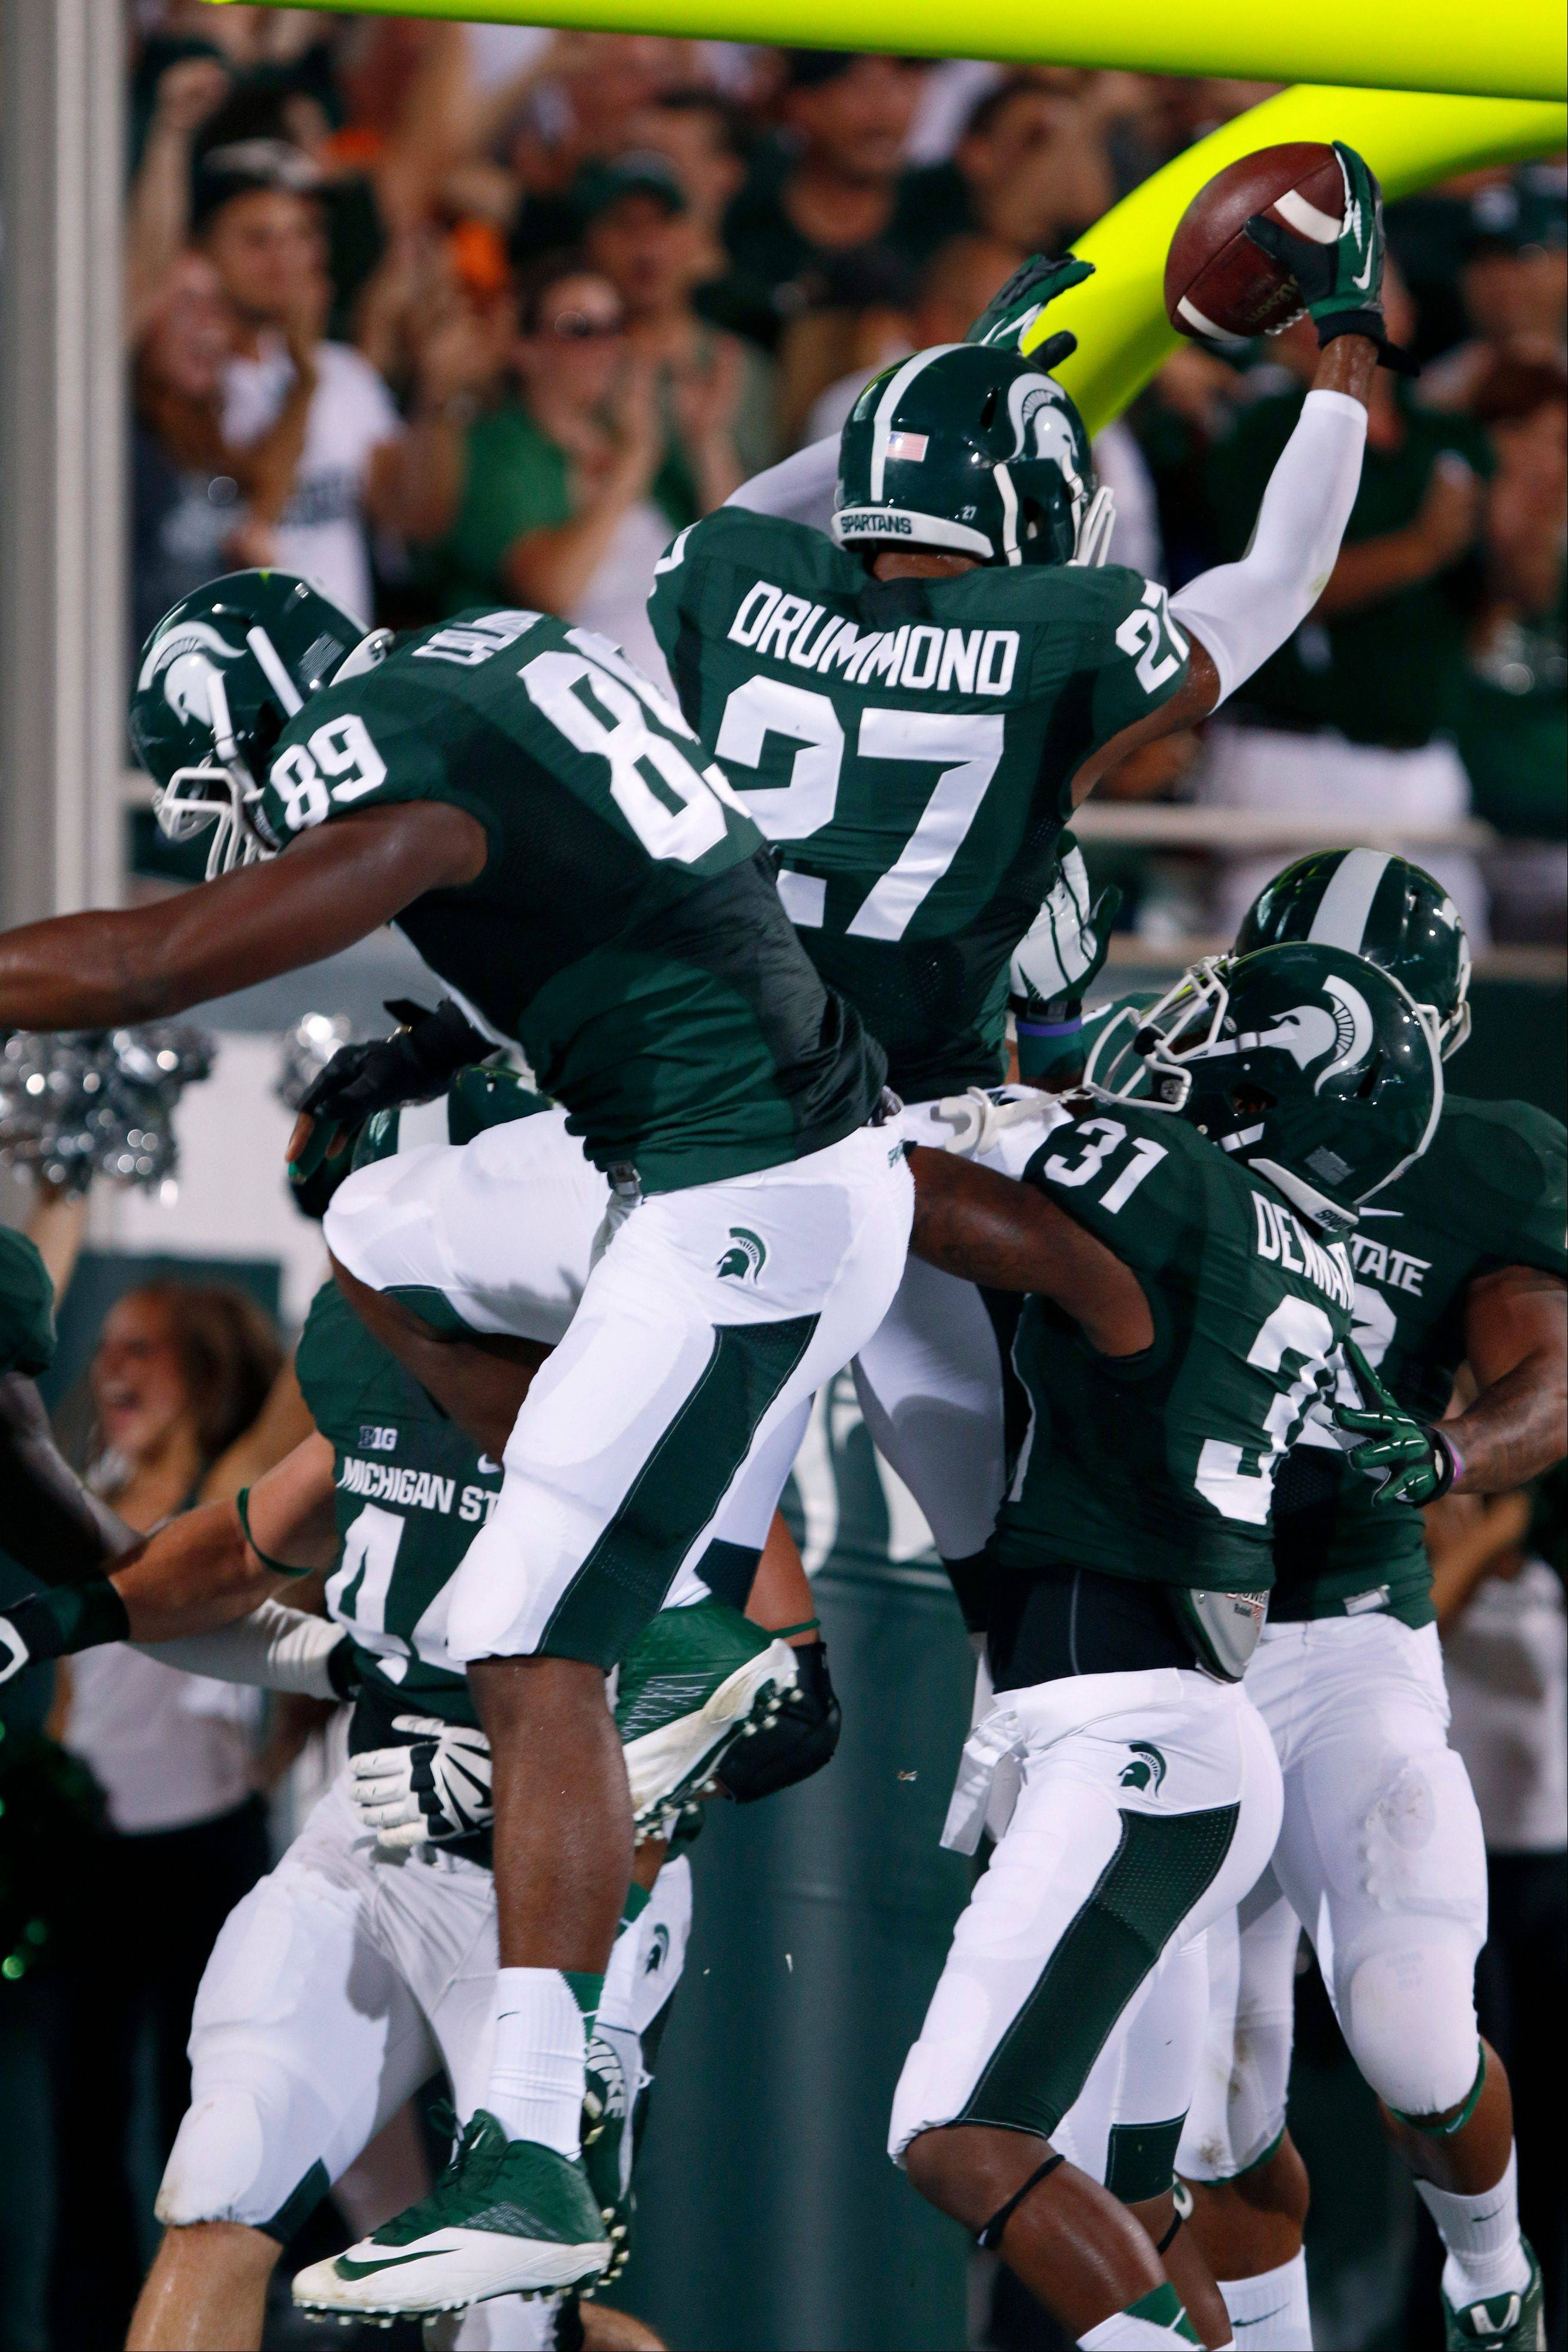 Michigan State's Kurtis Drummond (27), Shilique Calhoun (89) and Darqueze Dennard (31) celebrate Drummond's interception return for a touchdown during the first quarter against Western Michigan on Friday in East Lansing, Mich. The ball was intercepted by Jairus Jones and lateraled to Drummond for the score.